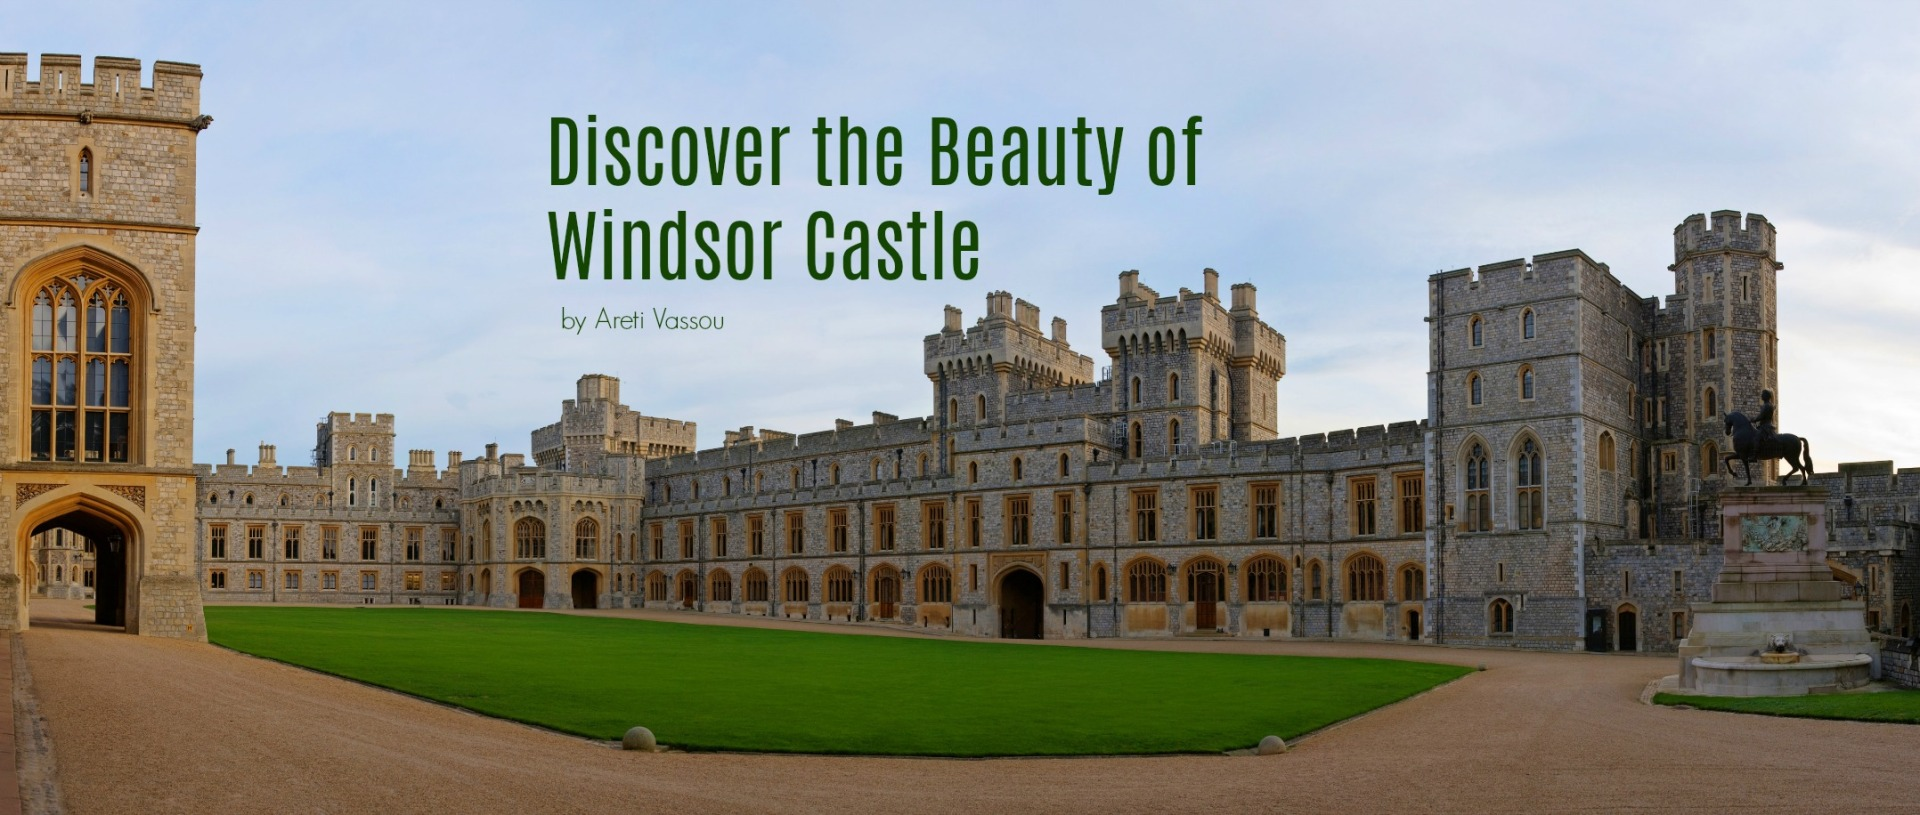 Discover the beauty of Windsor Castle England